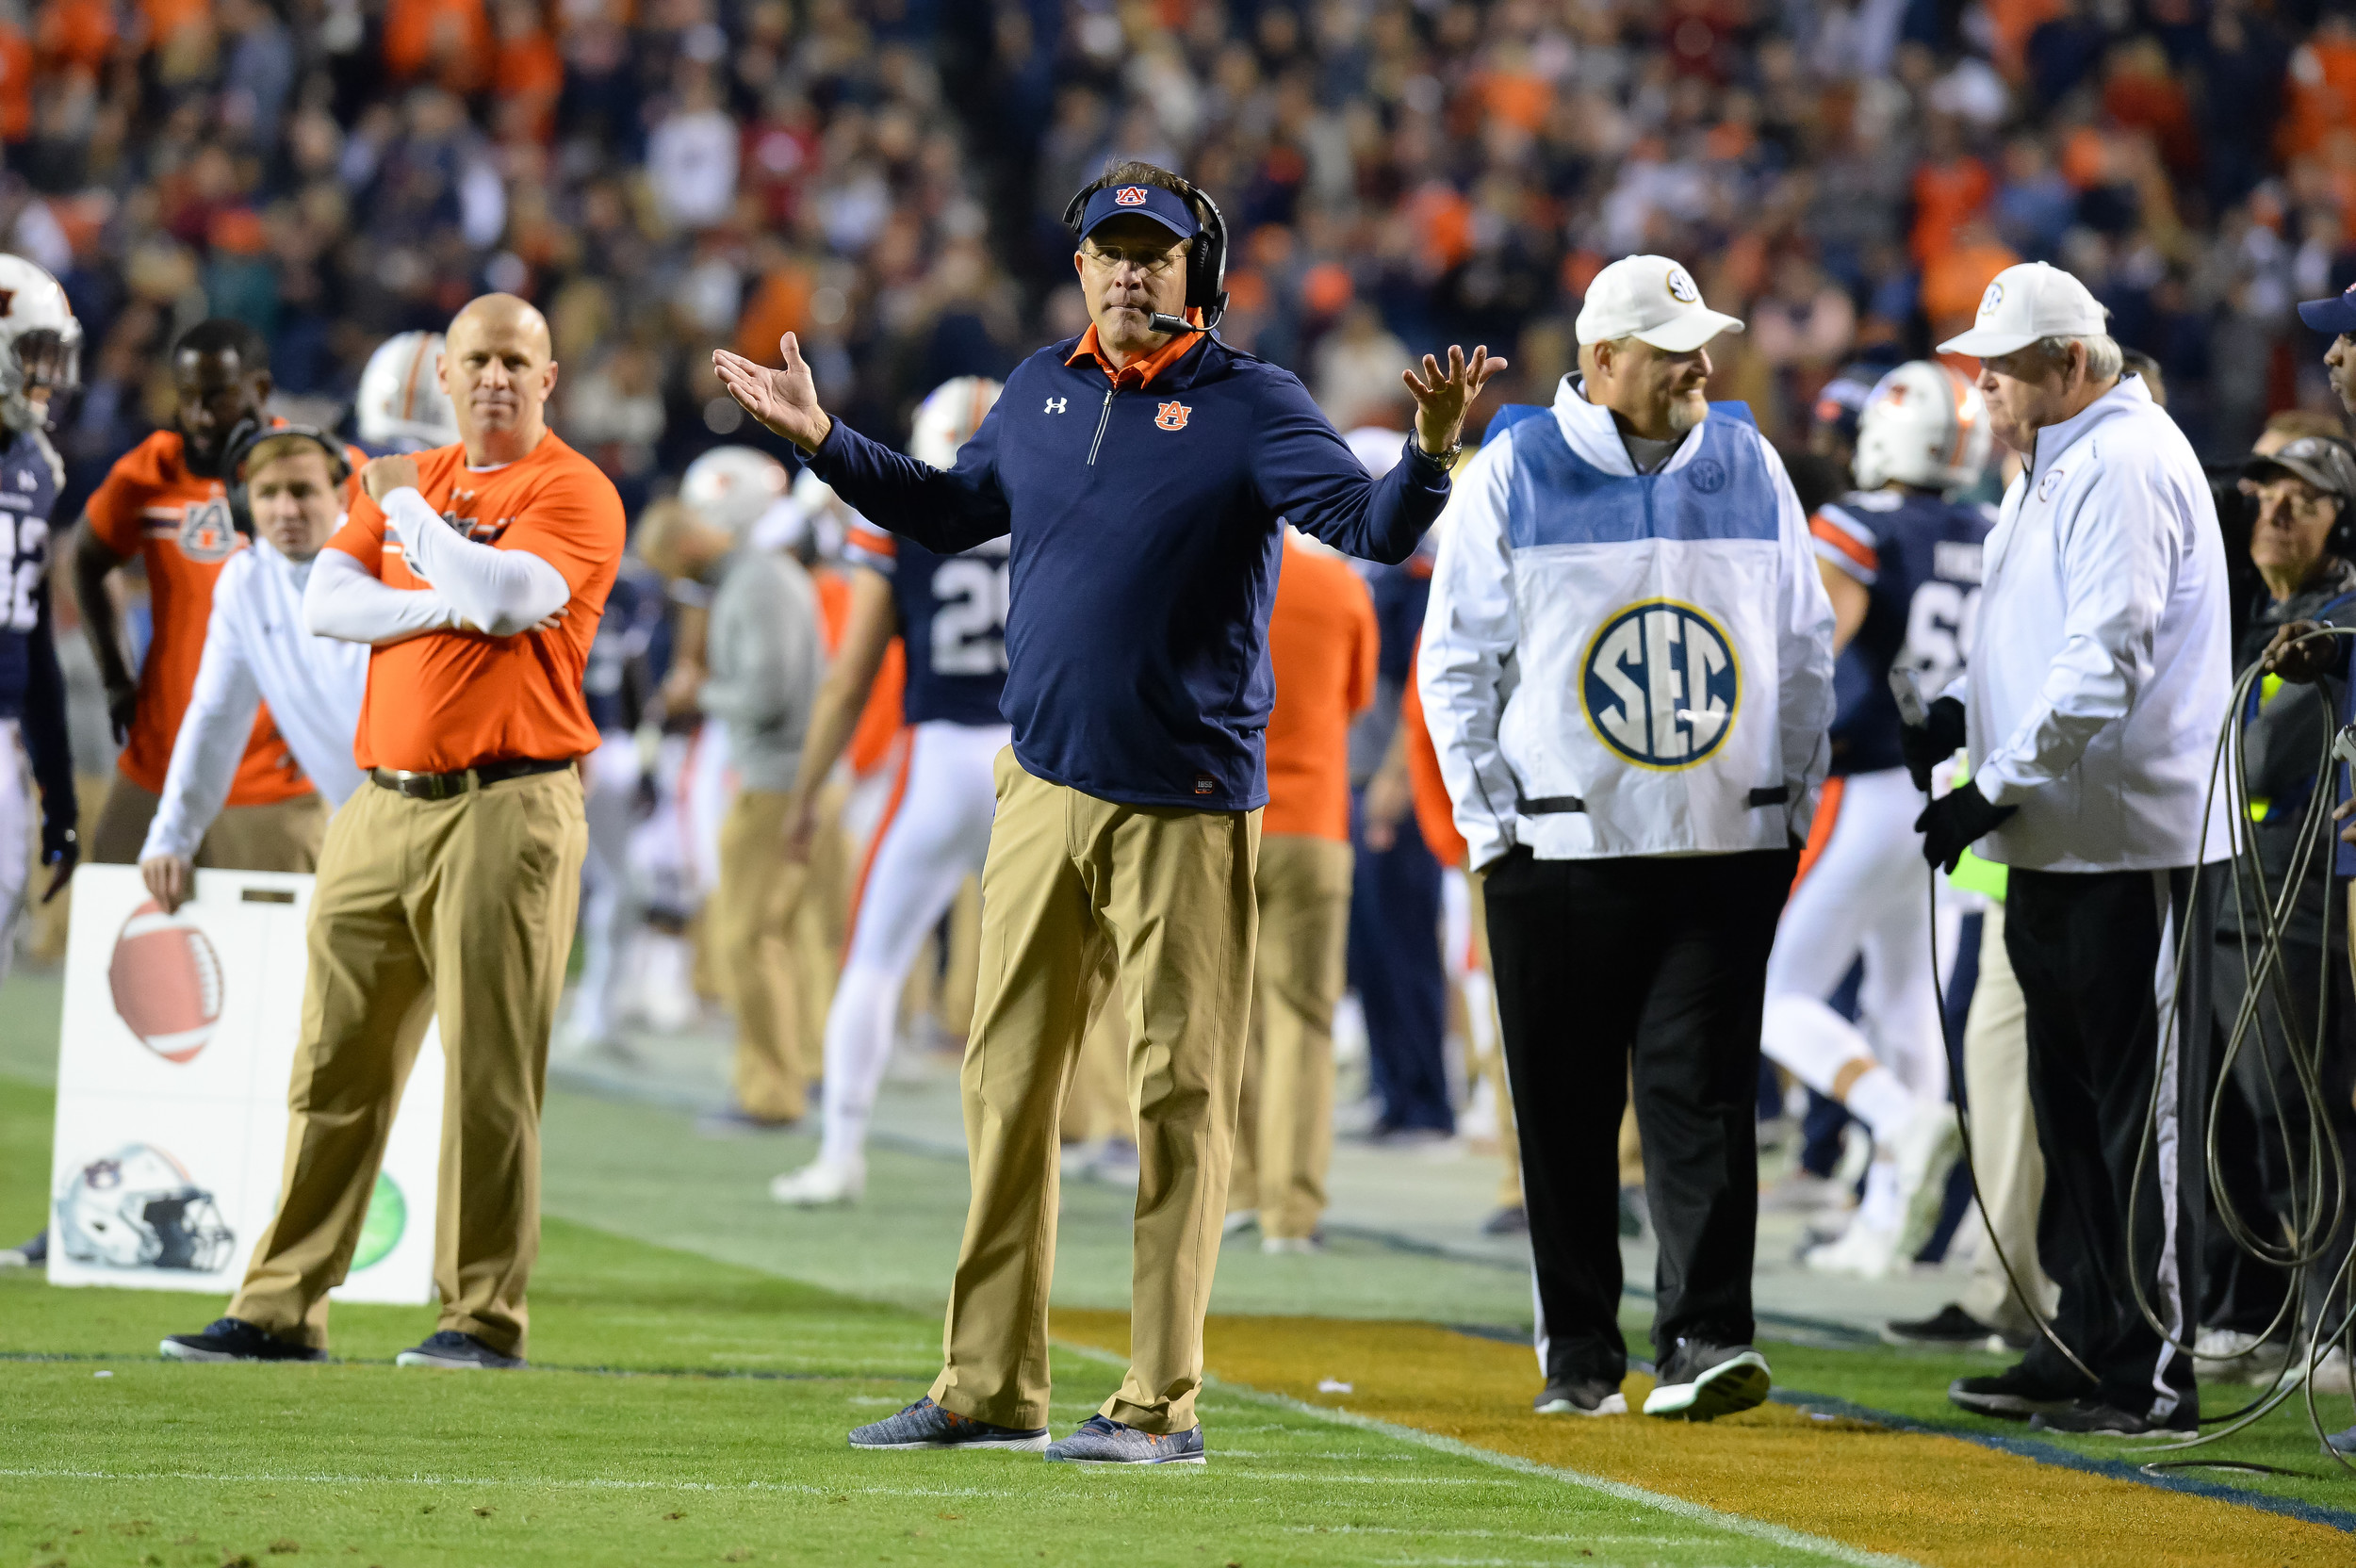 Auburn Tigers head coach Guz Malzahn reacts to a call during the second half of Saturday's game, at Jordan-Hare Stadium.